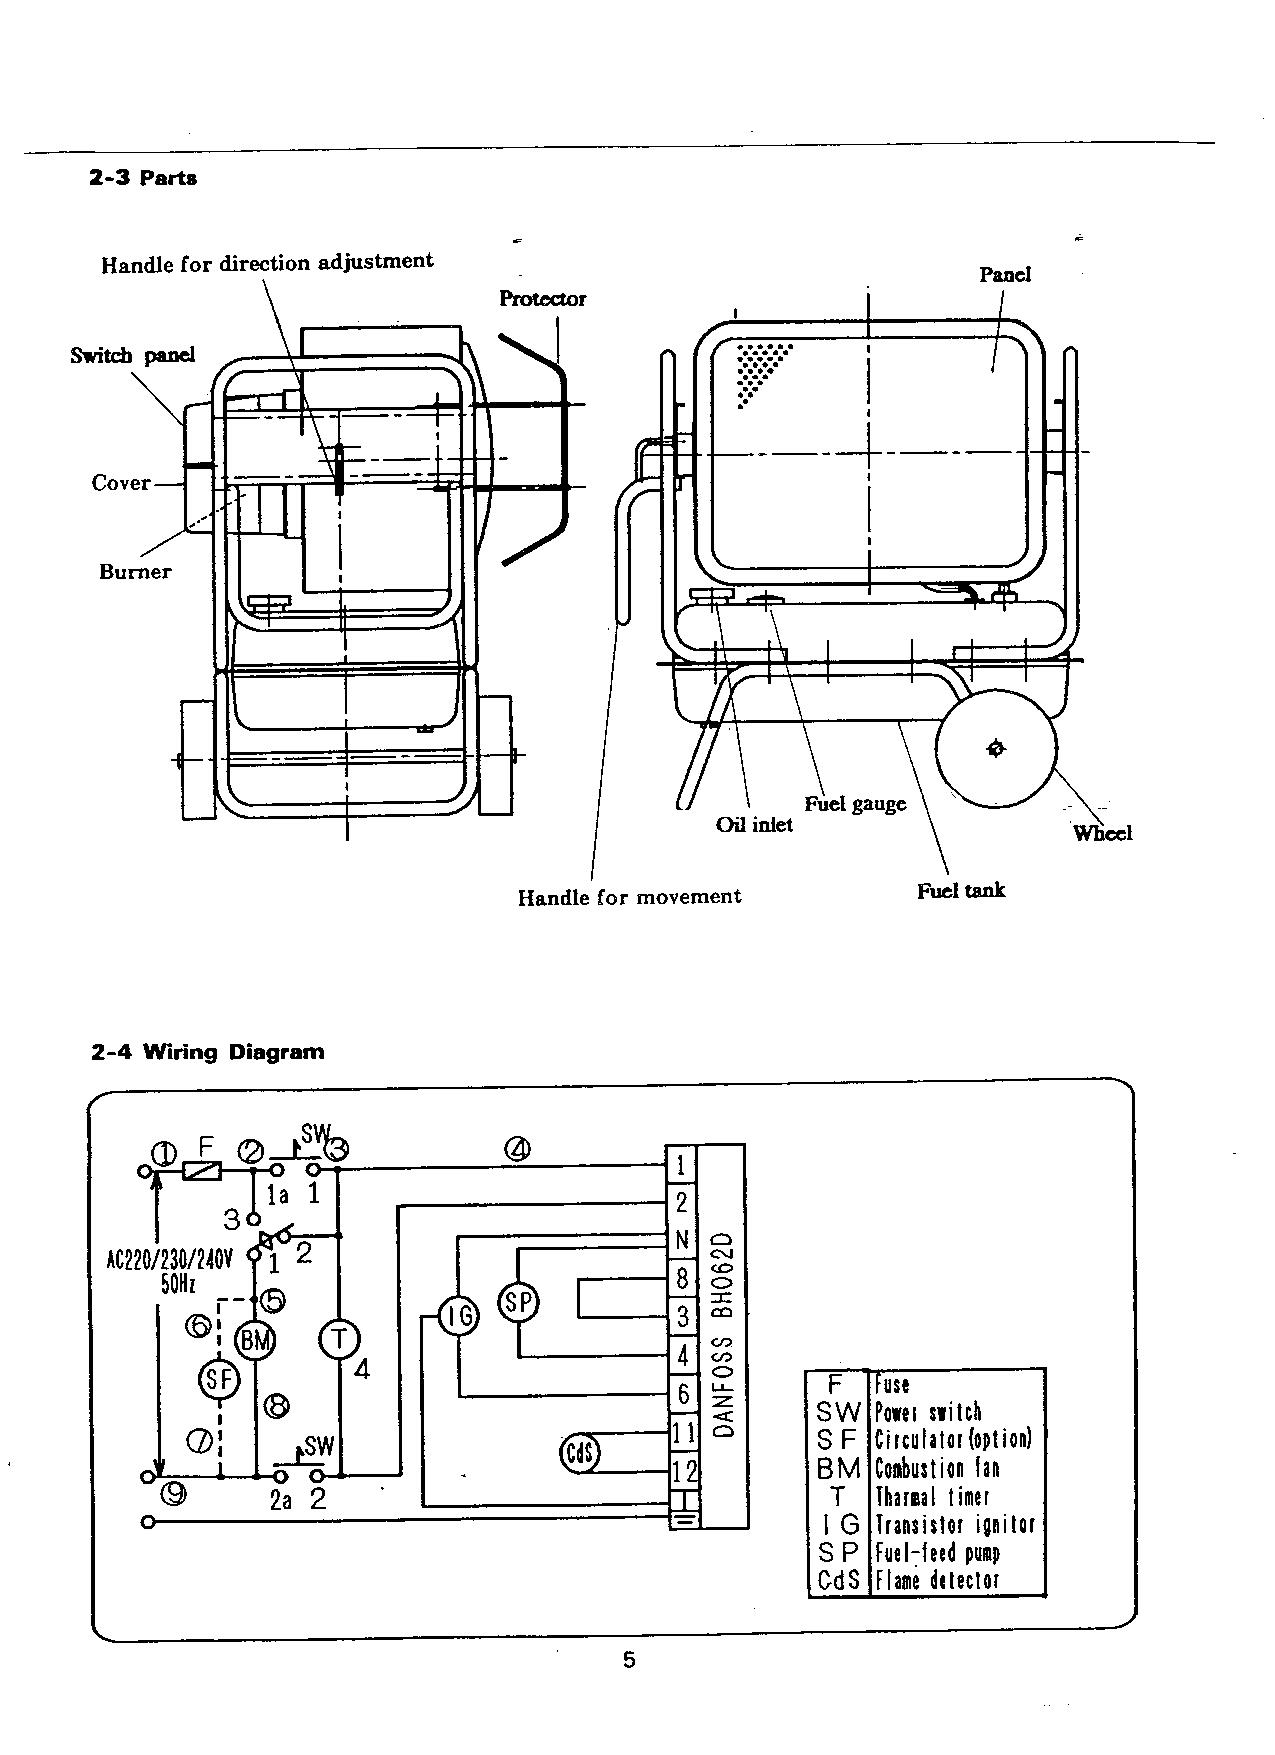 Nest Radiant Heat Wiring Diagram Auto Electrical Of A System